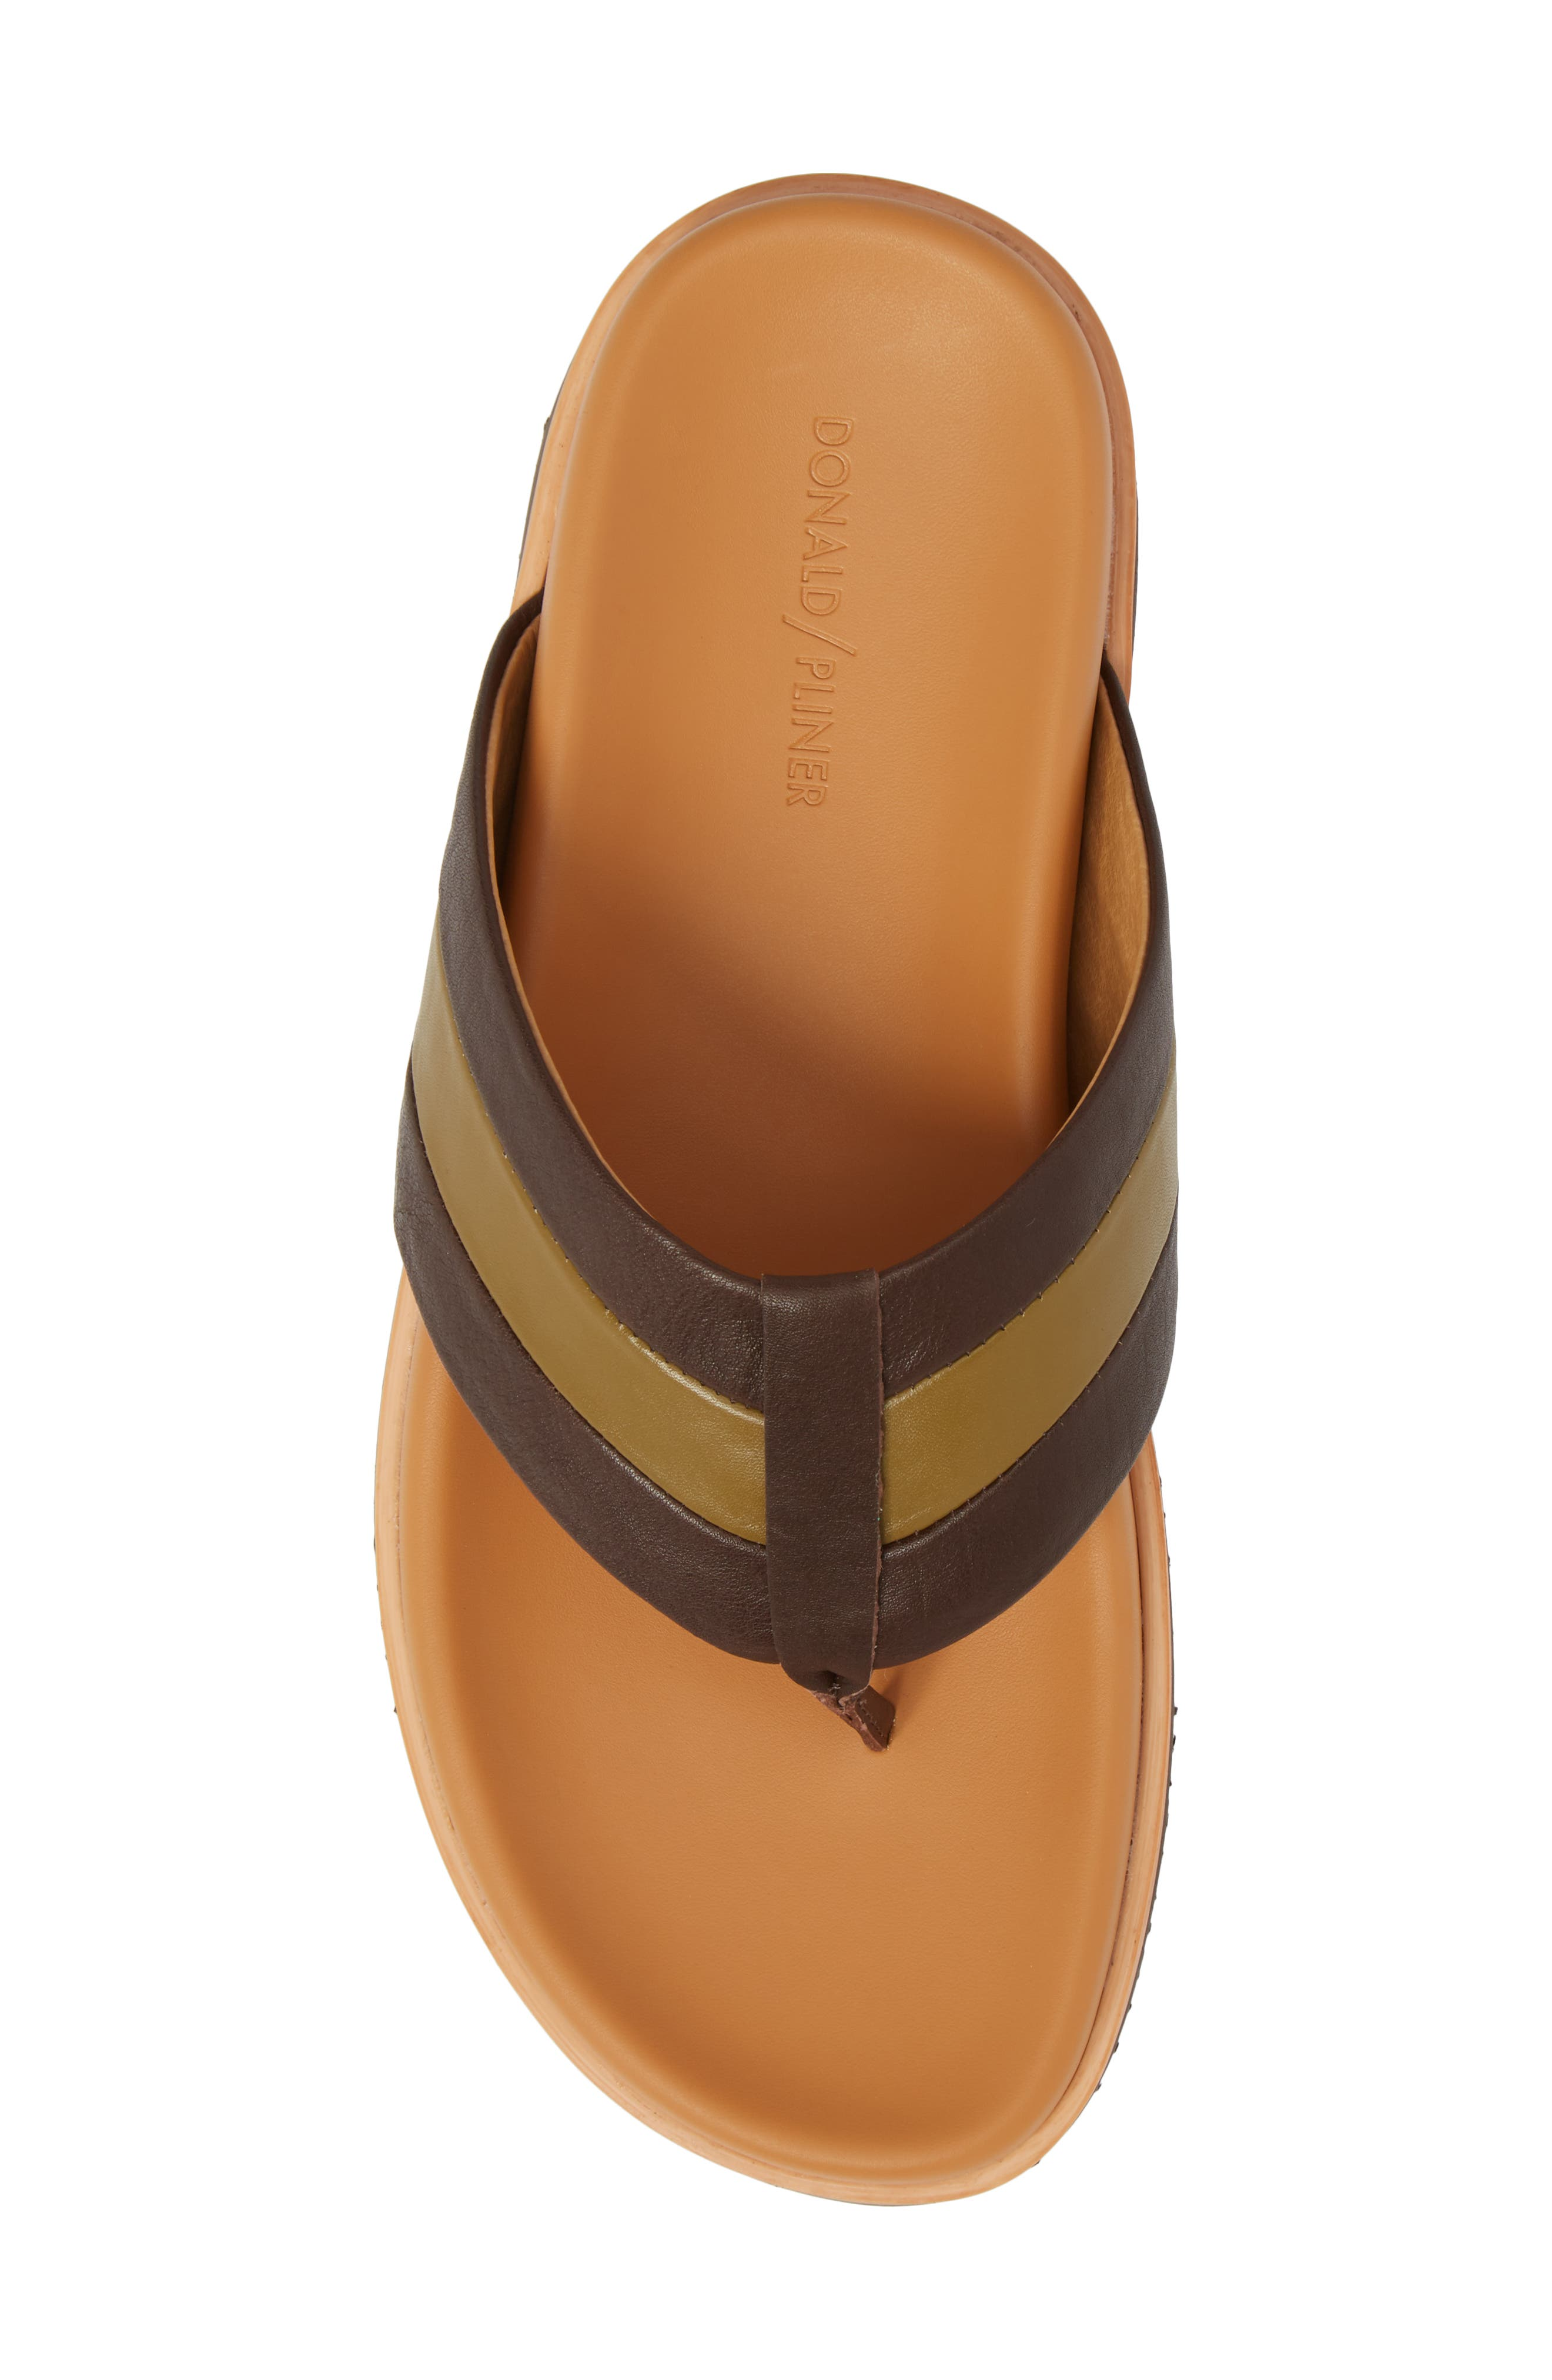 Bryce Striped Flip Flop,                             Alternate thumbnail 5, color,                             Brown/ Tan Leather